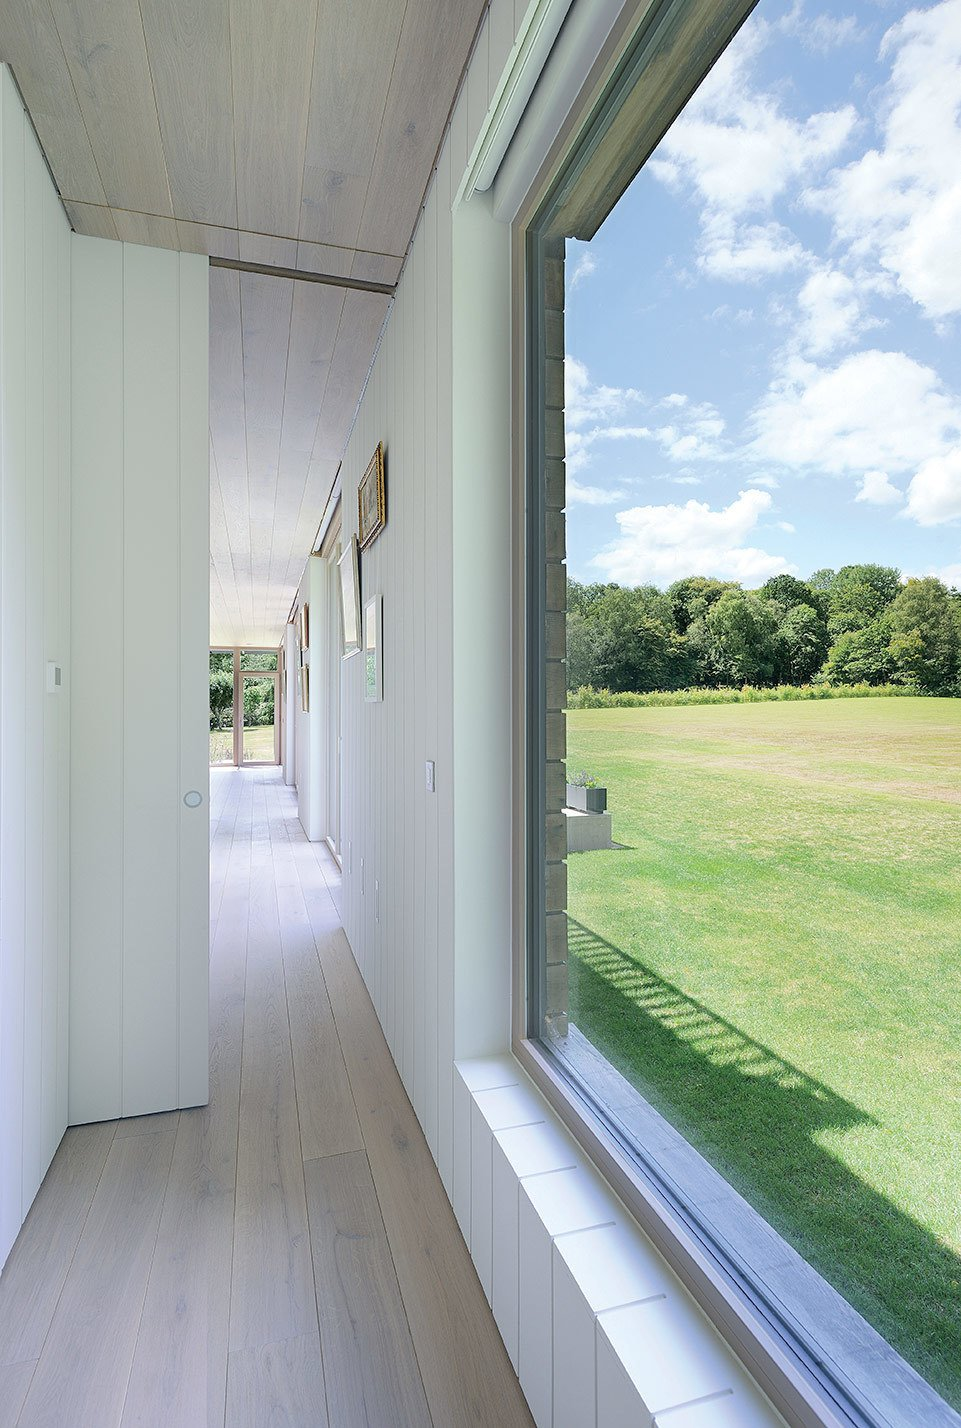 With expansive EcoHaus Internorm windows, the space feels larger than its 1,400 square feet. Tagged: Hallway and Light Hardwood Floor.  Best Photos from A Modern Mobile Home Dropped in Place by Crane